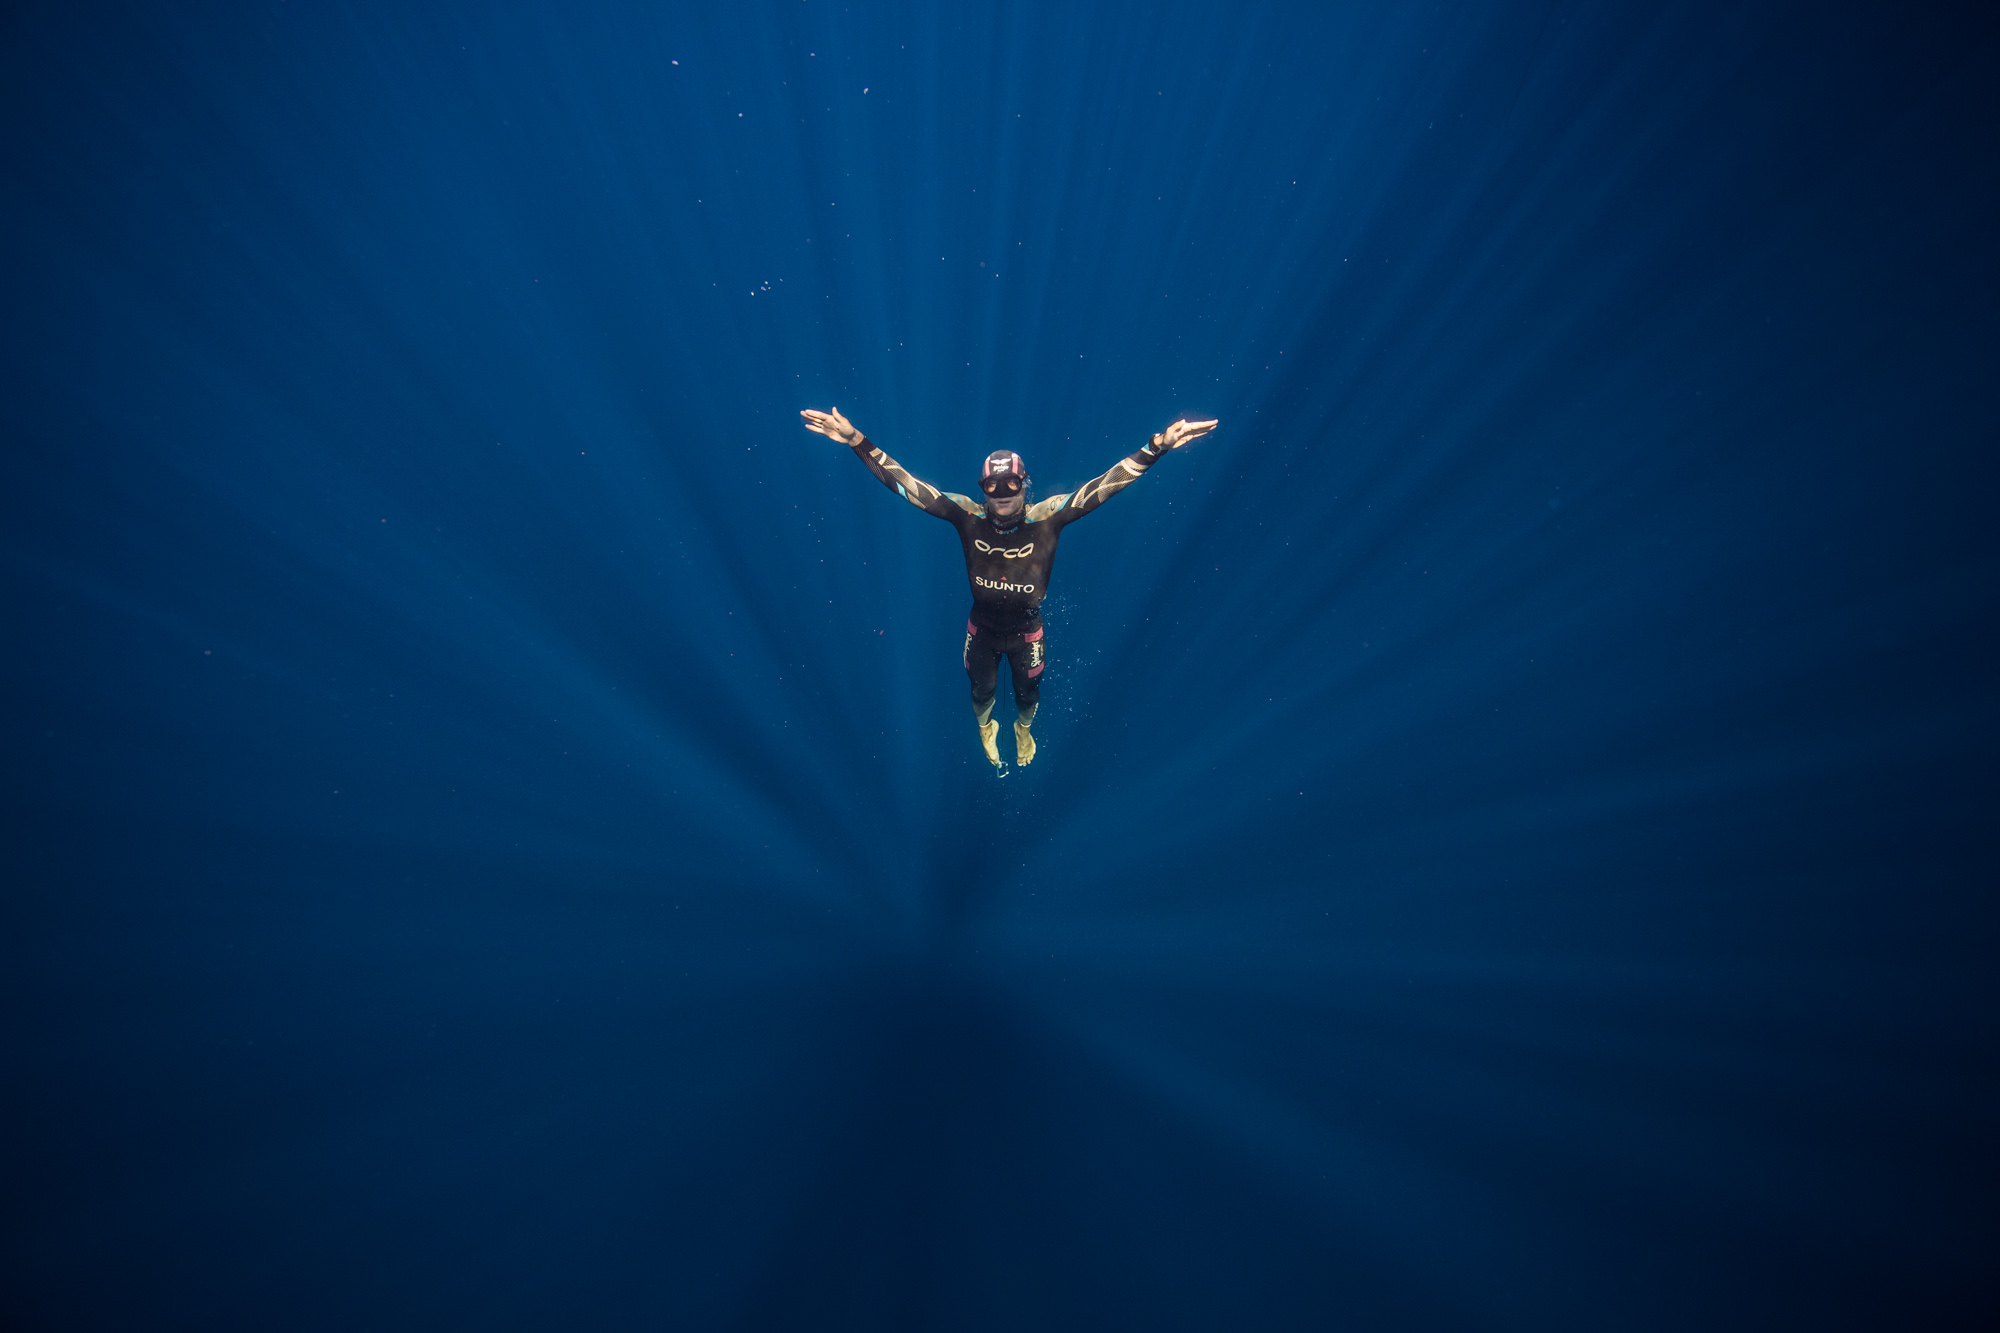 WILLIAM TRUBRIDGE BREAKS UNASSISTED FREEDIVING WORLD RECORD WITH DIVE TO 102 METERS